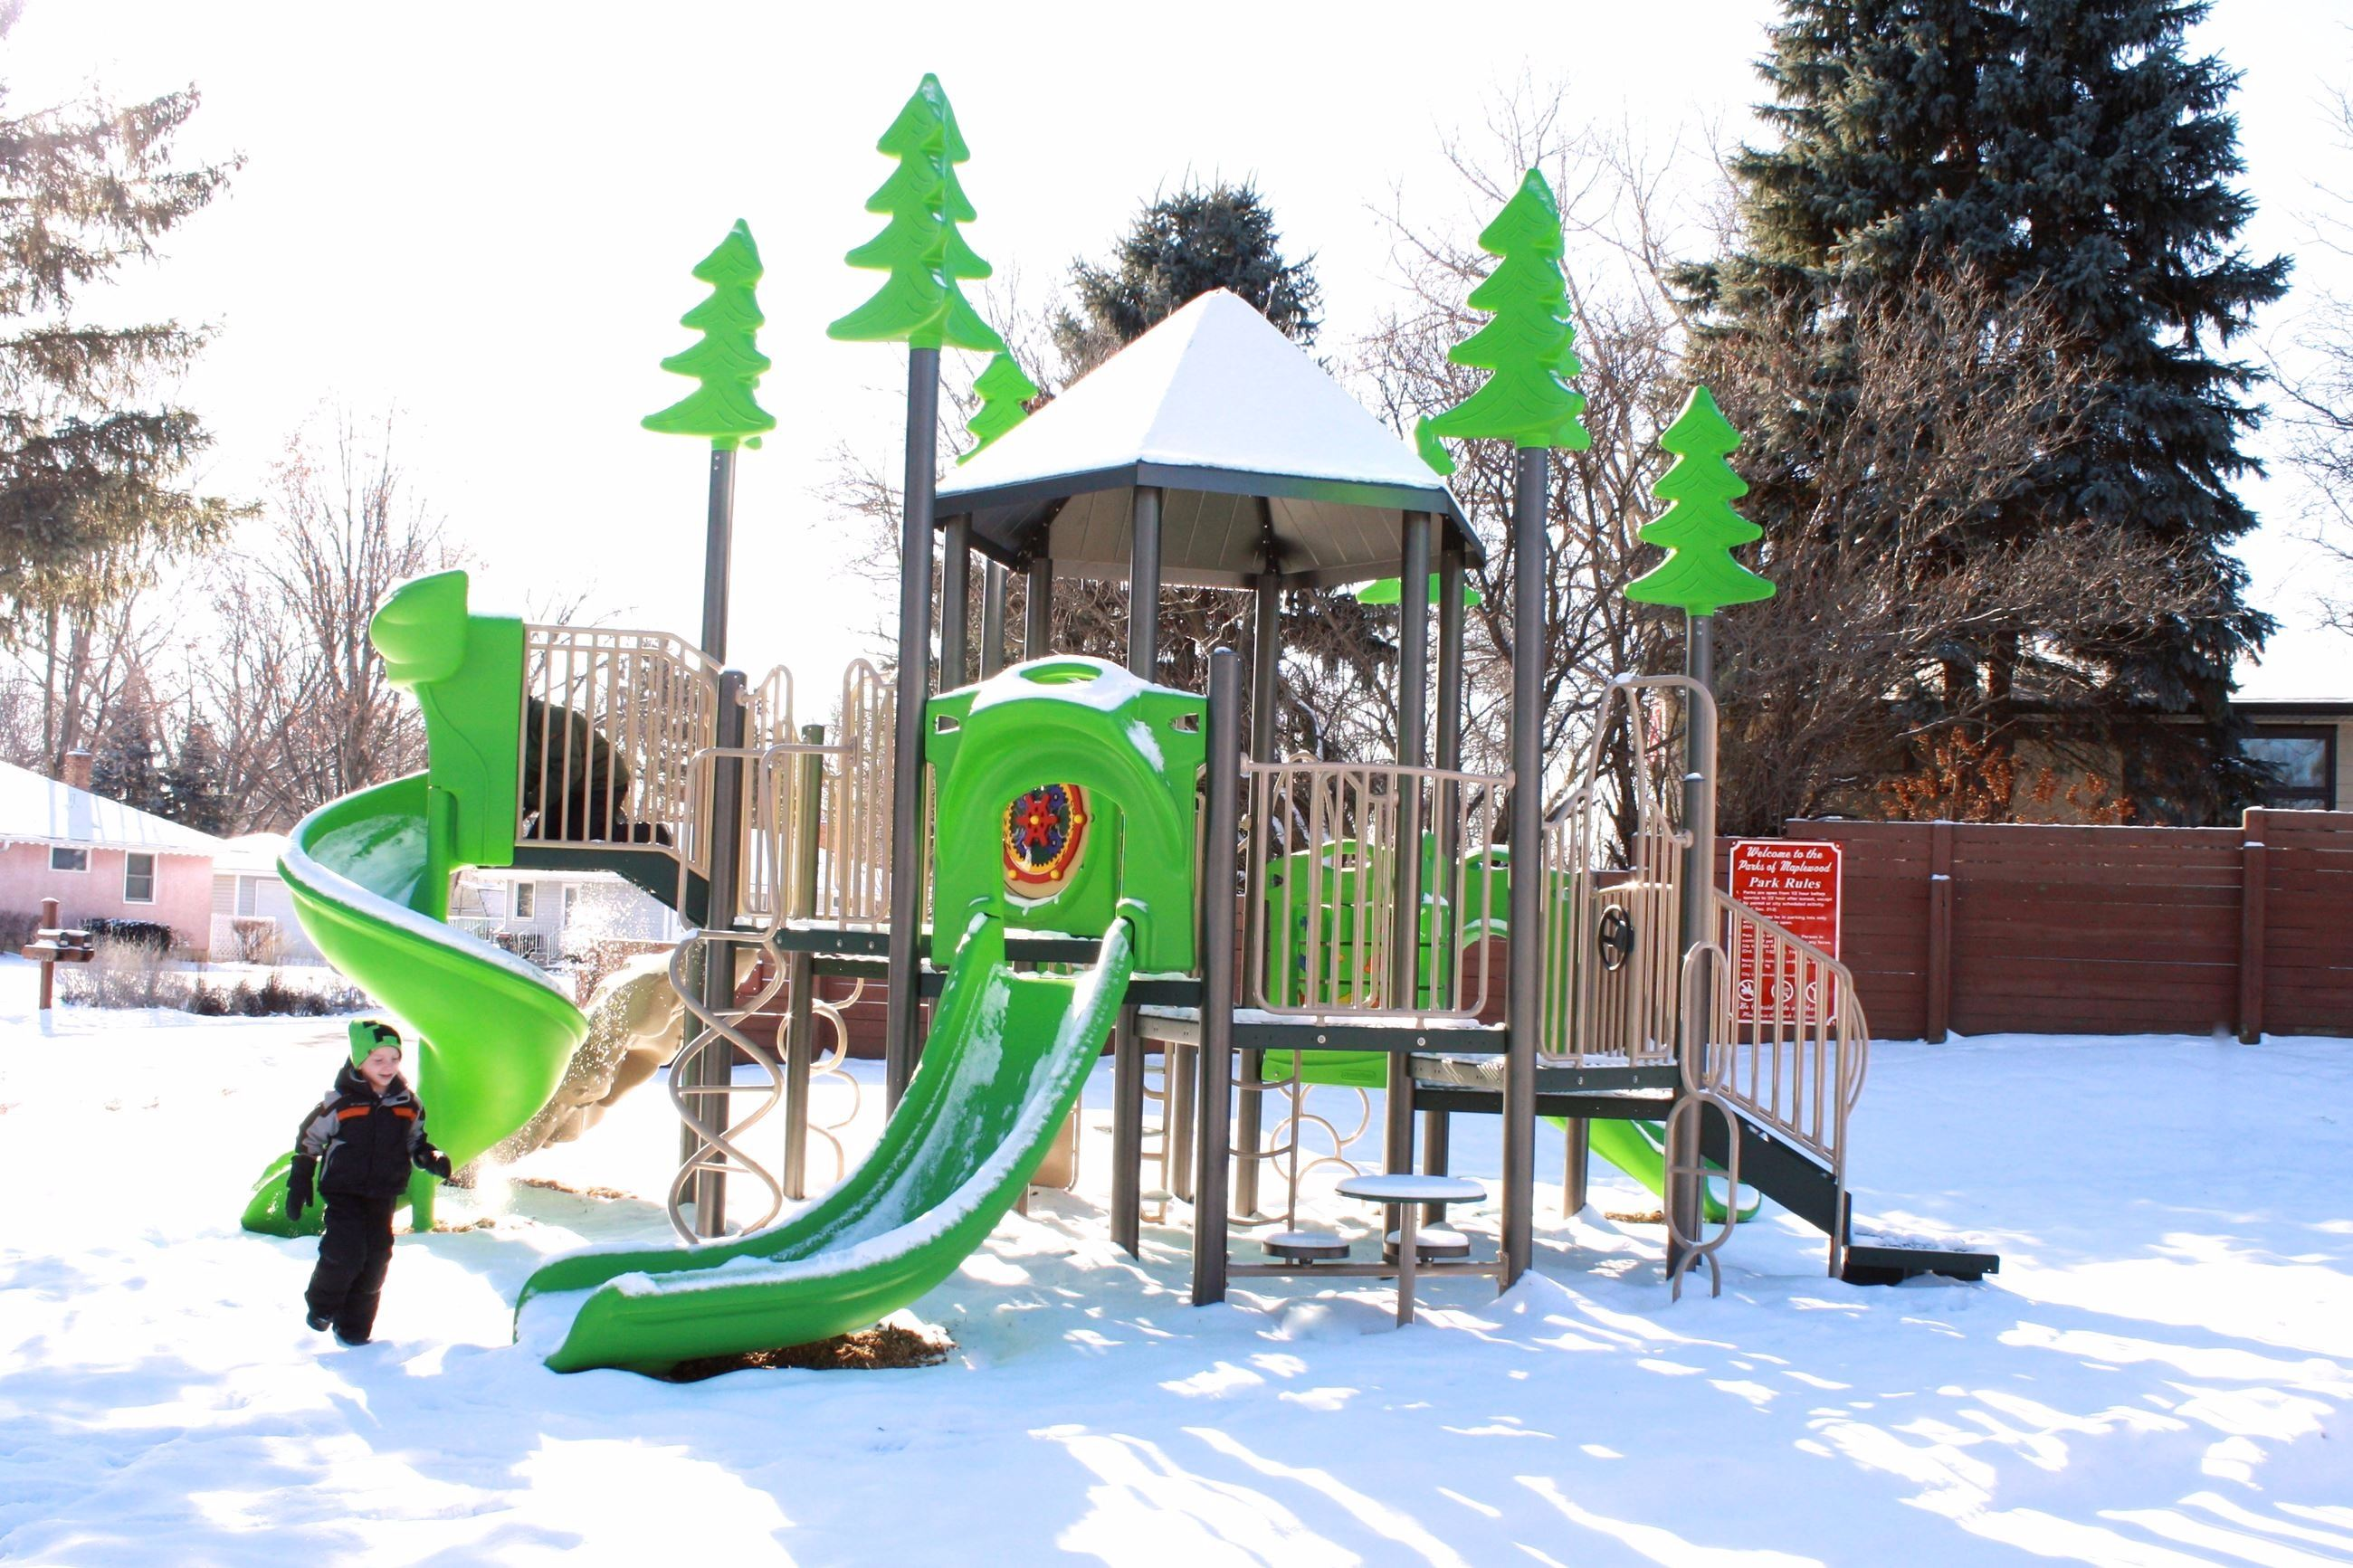 Timber Park Playground in Snow